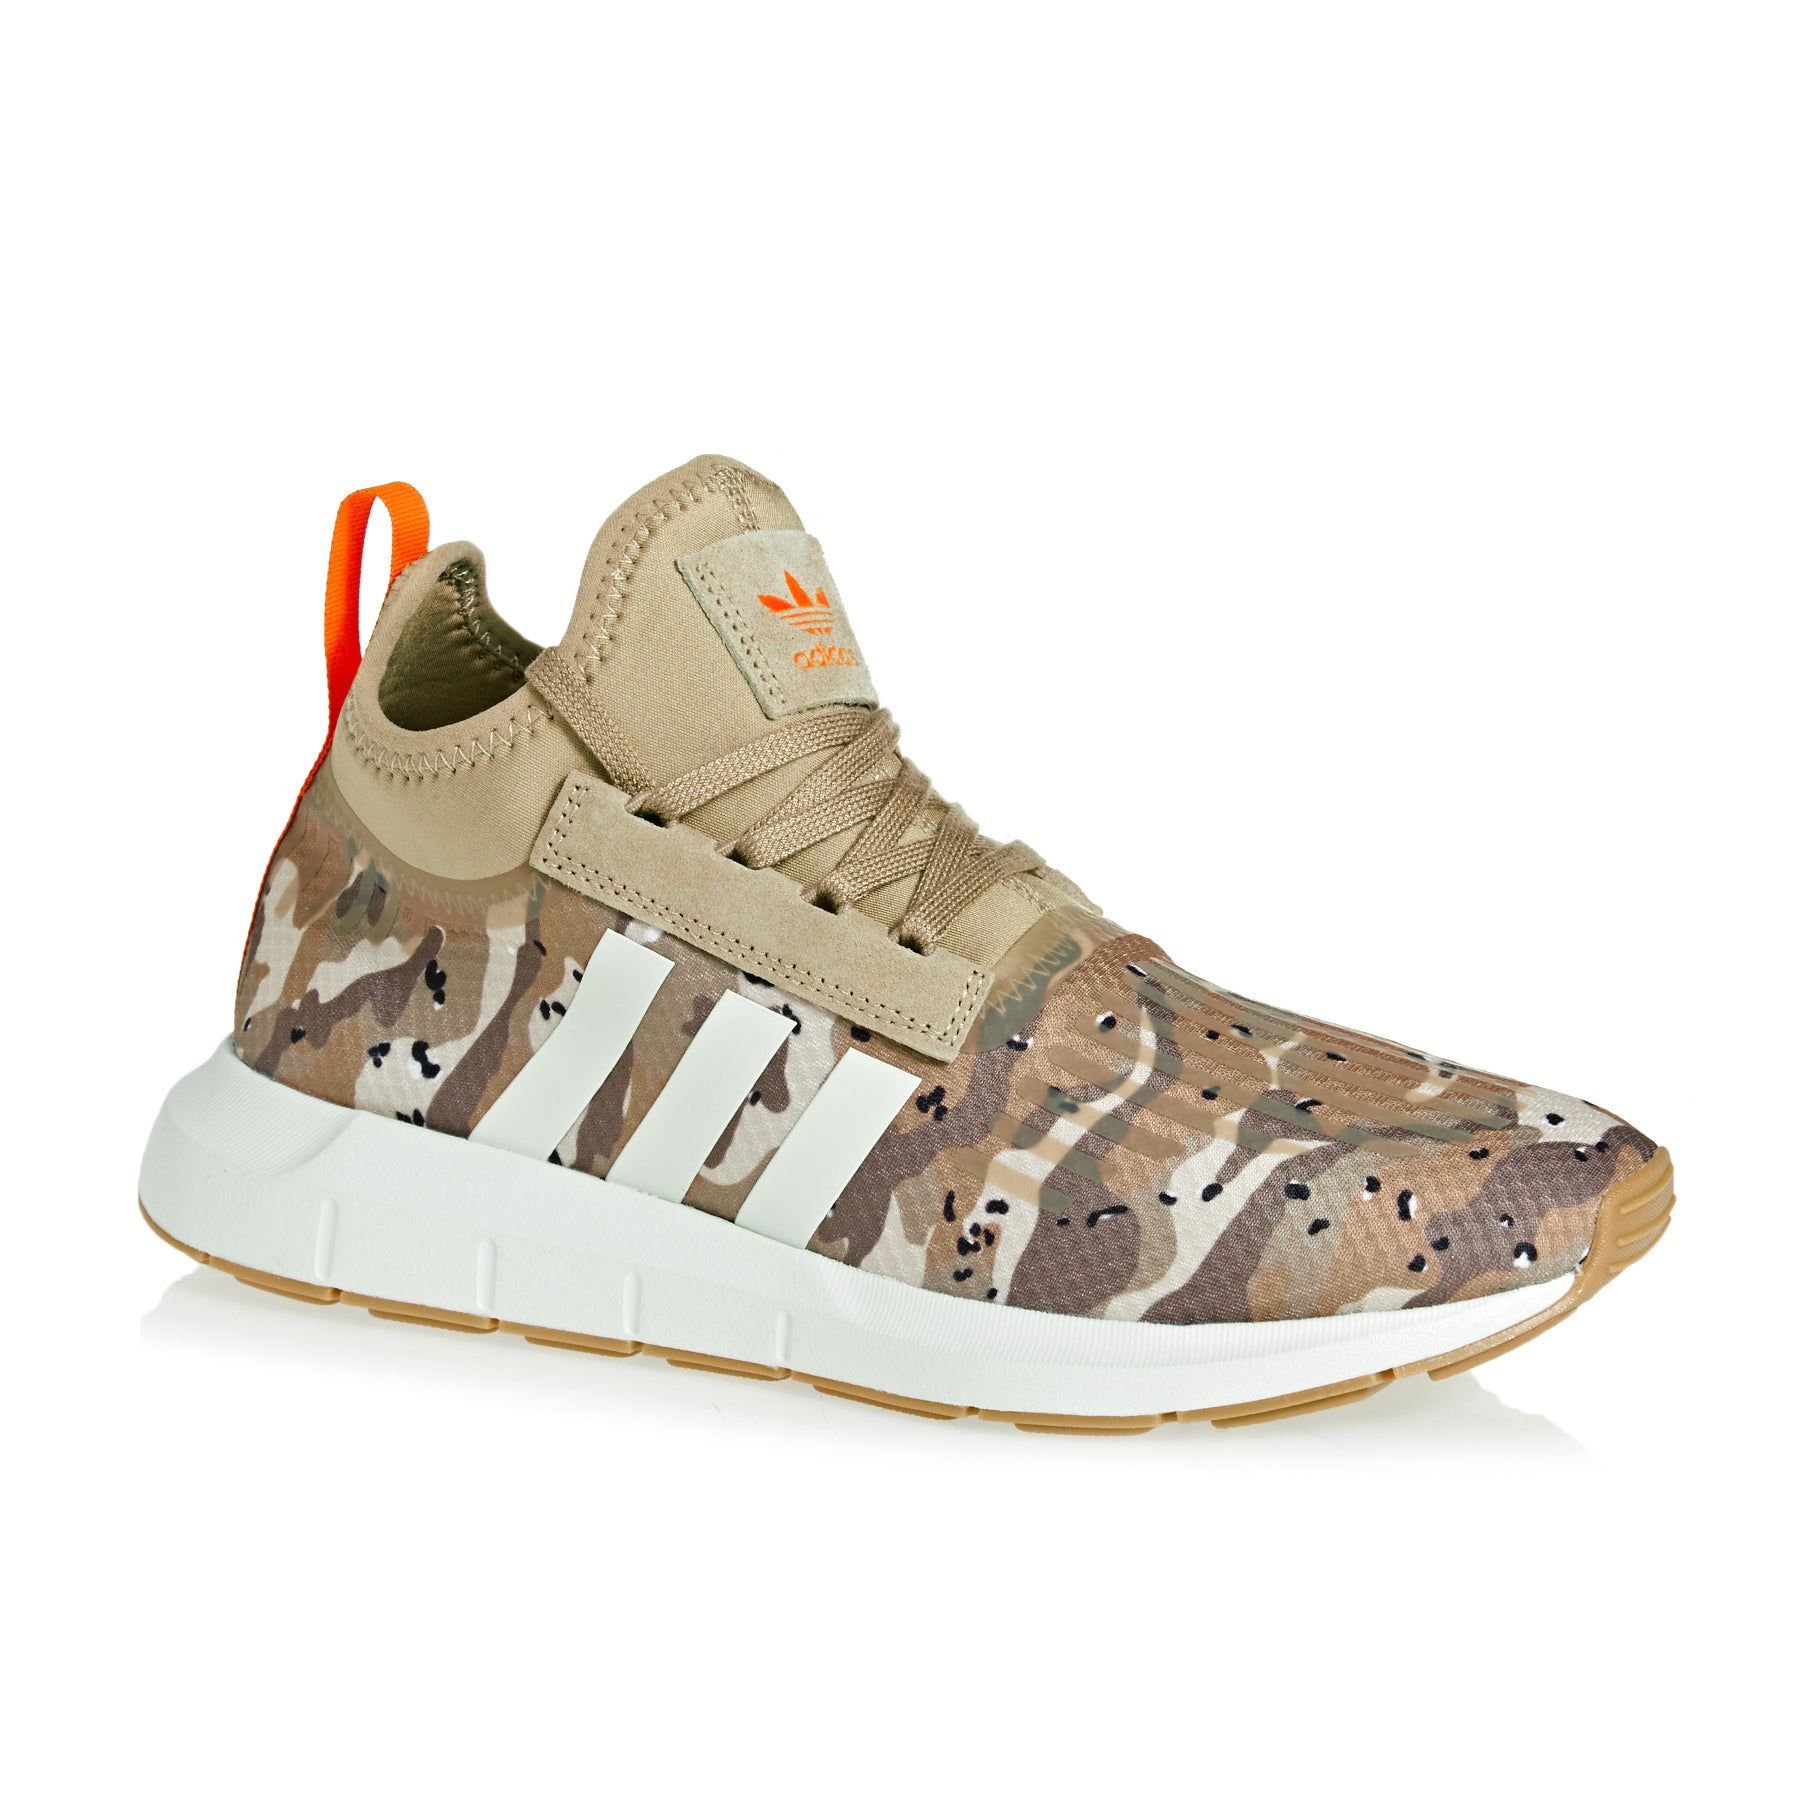 Adidas Originals Swift Run Barrier Shoes - Cardboard White Orange